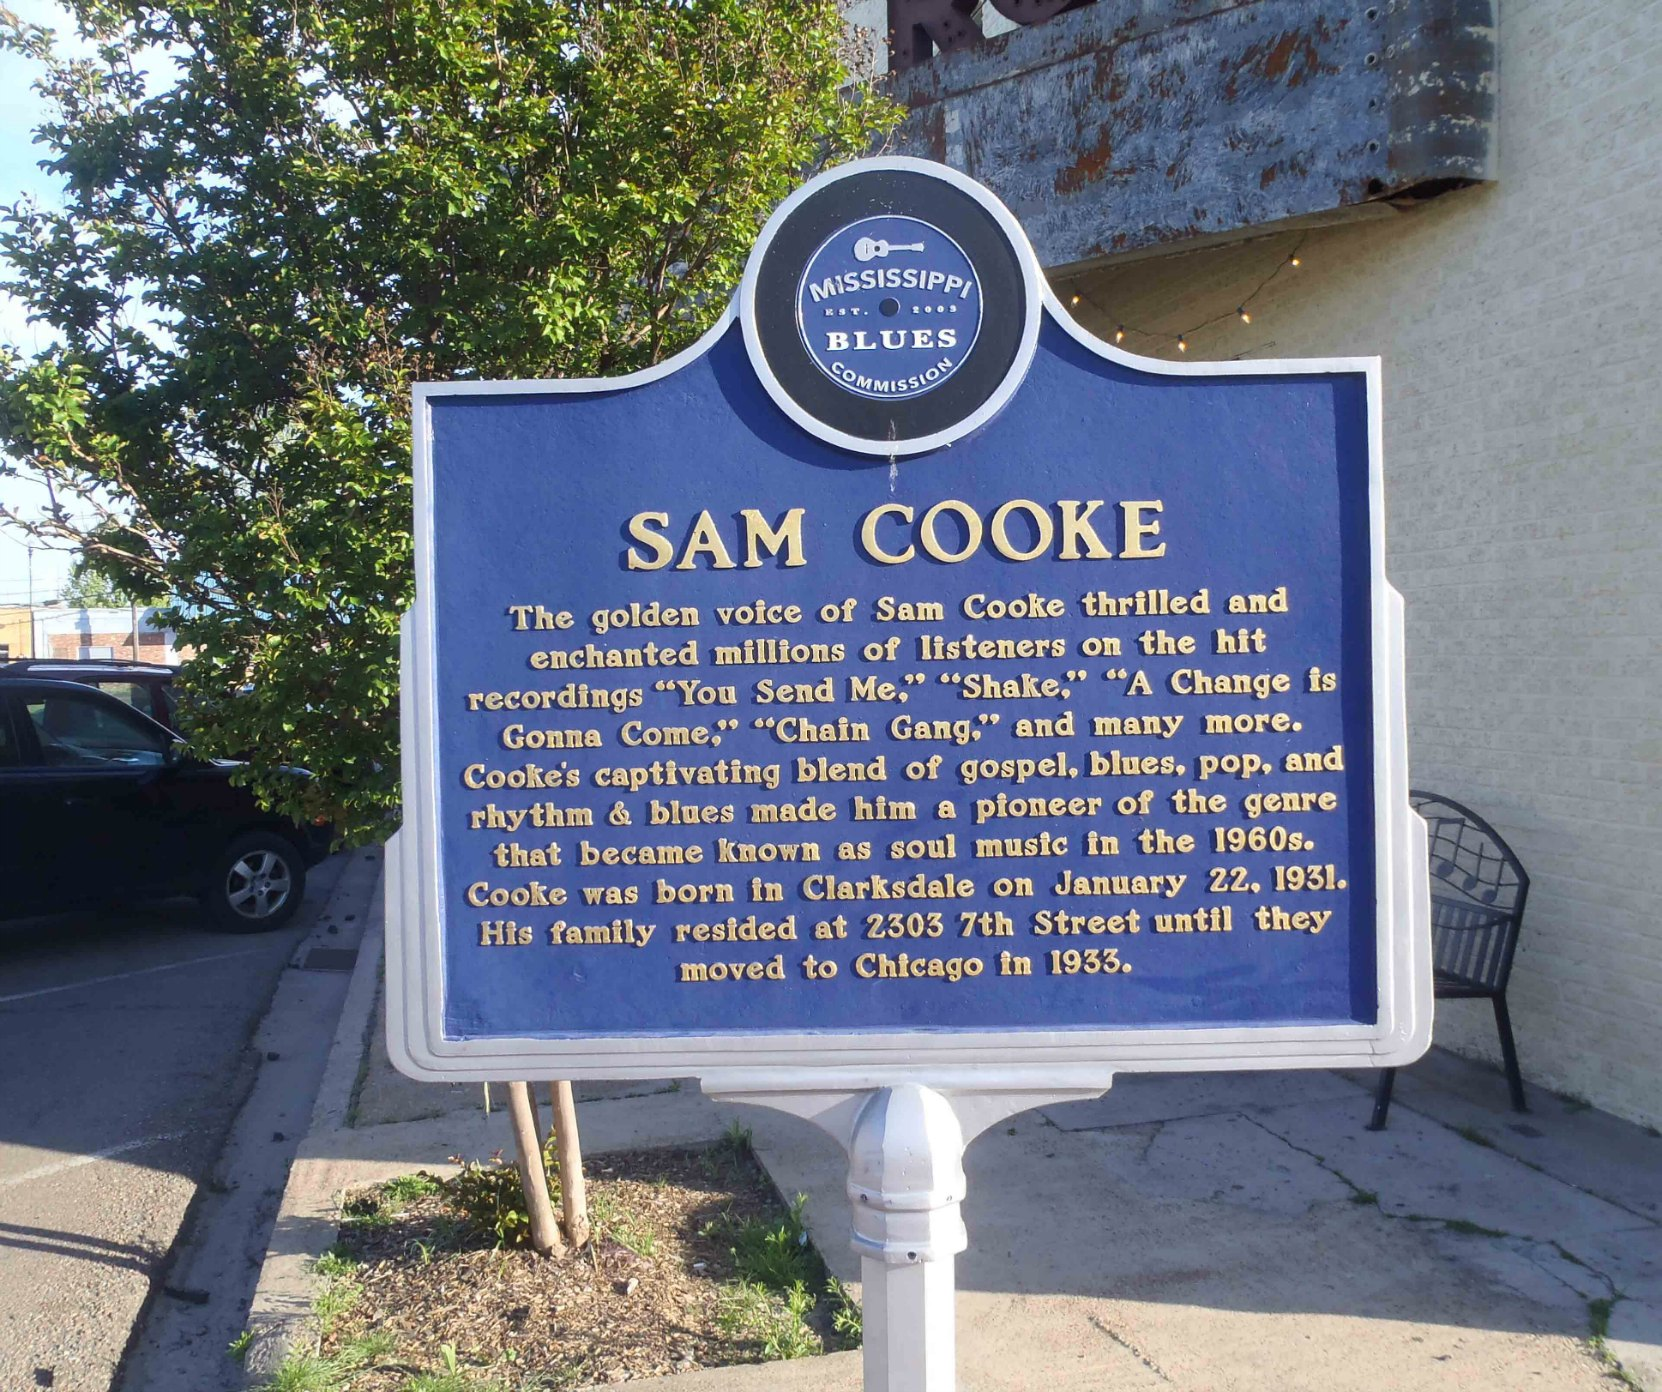 The Mississippi Blues Trail marker for Sam Cooke, Clarksdale, Mississippi